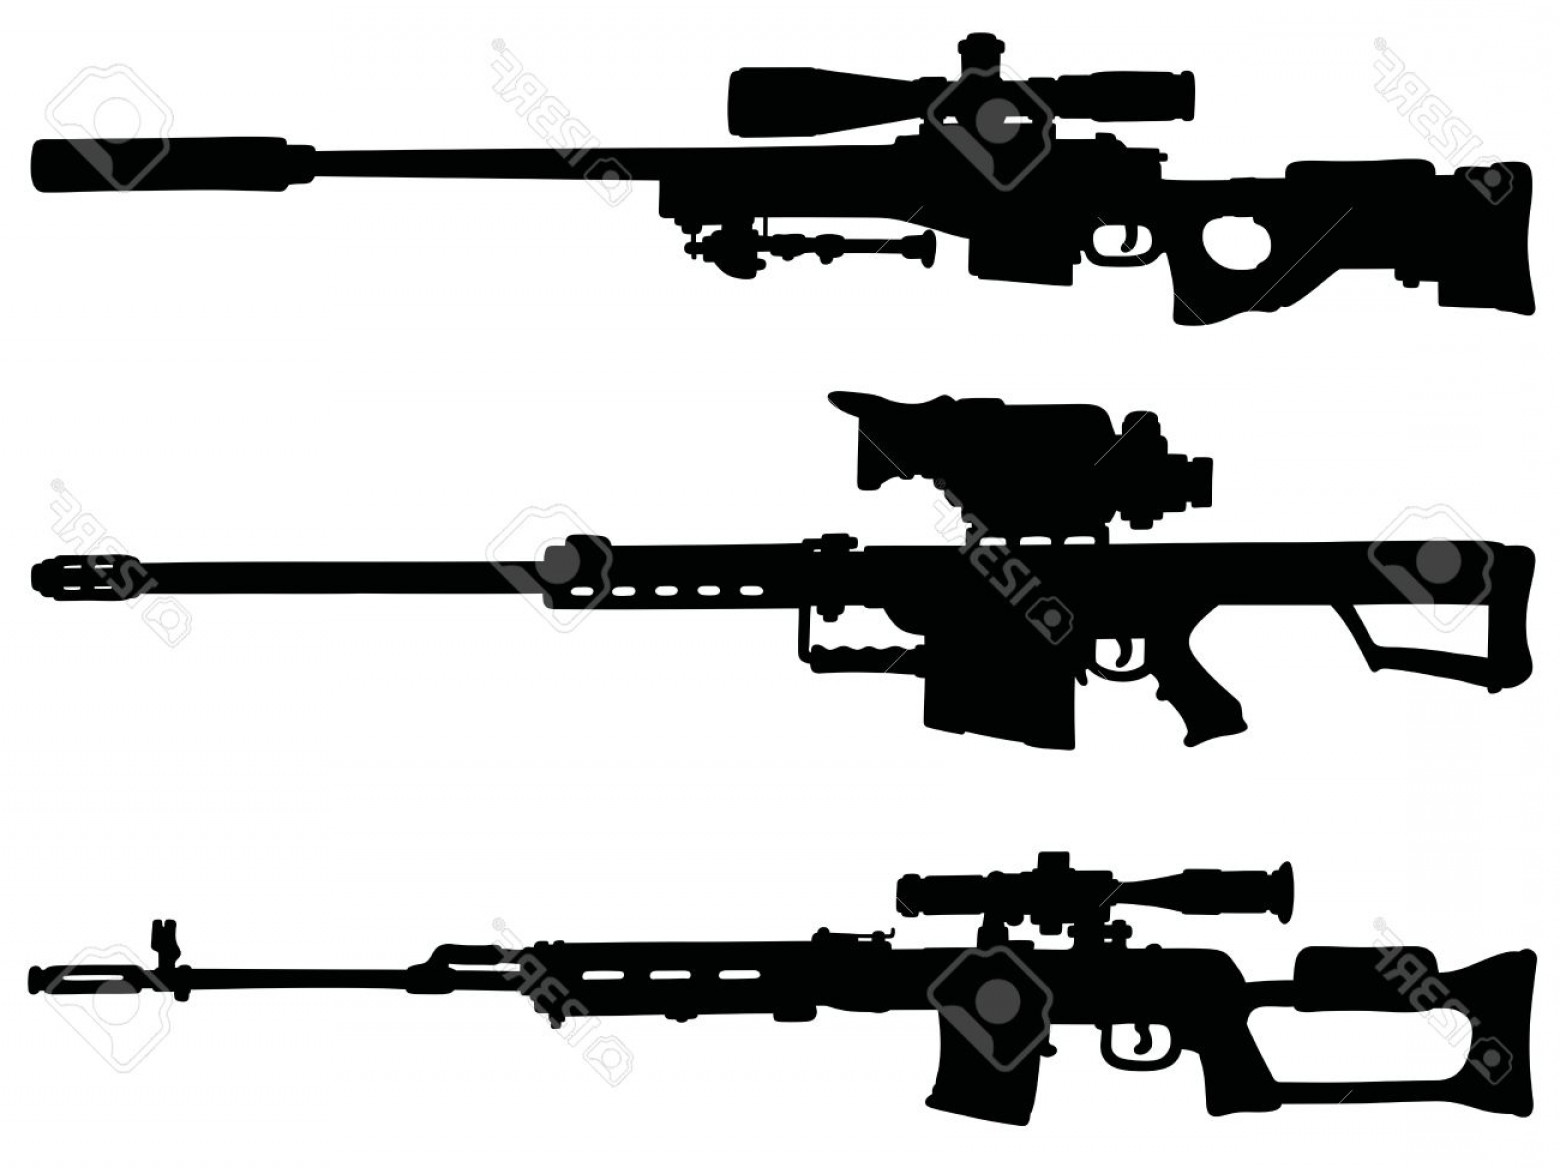 Hunting Rifle Vector Cross: Photostock Vector Three Big Black Sniper Rifles Silhouettes